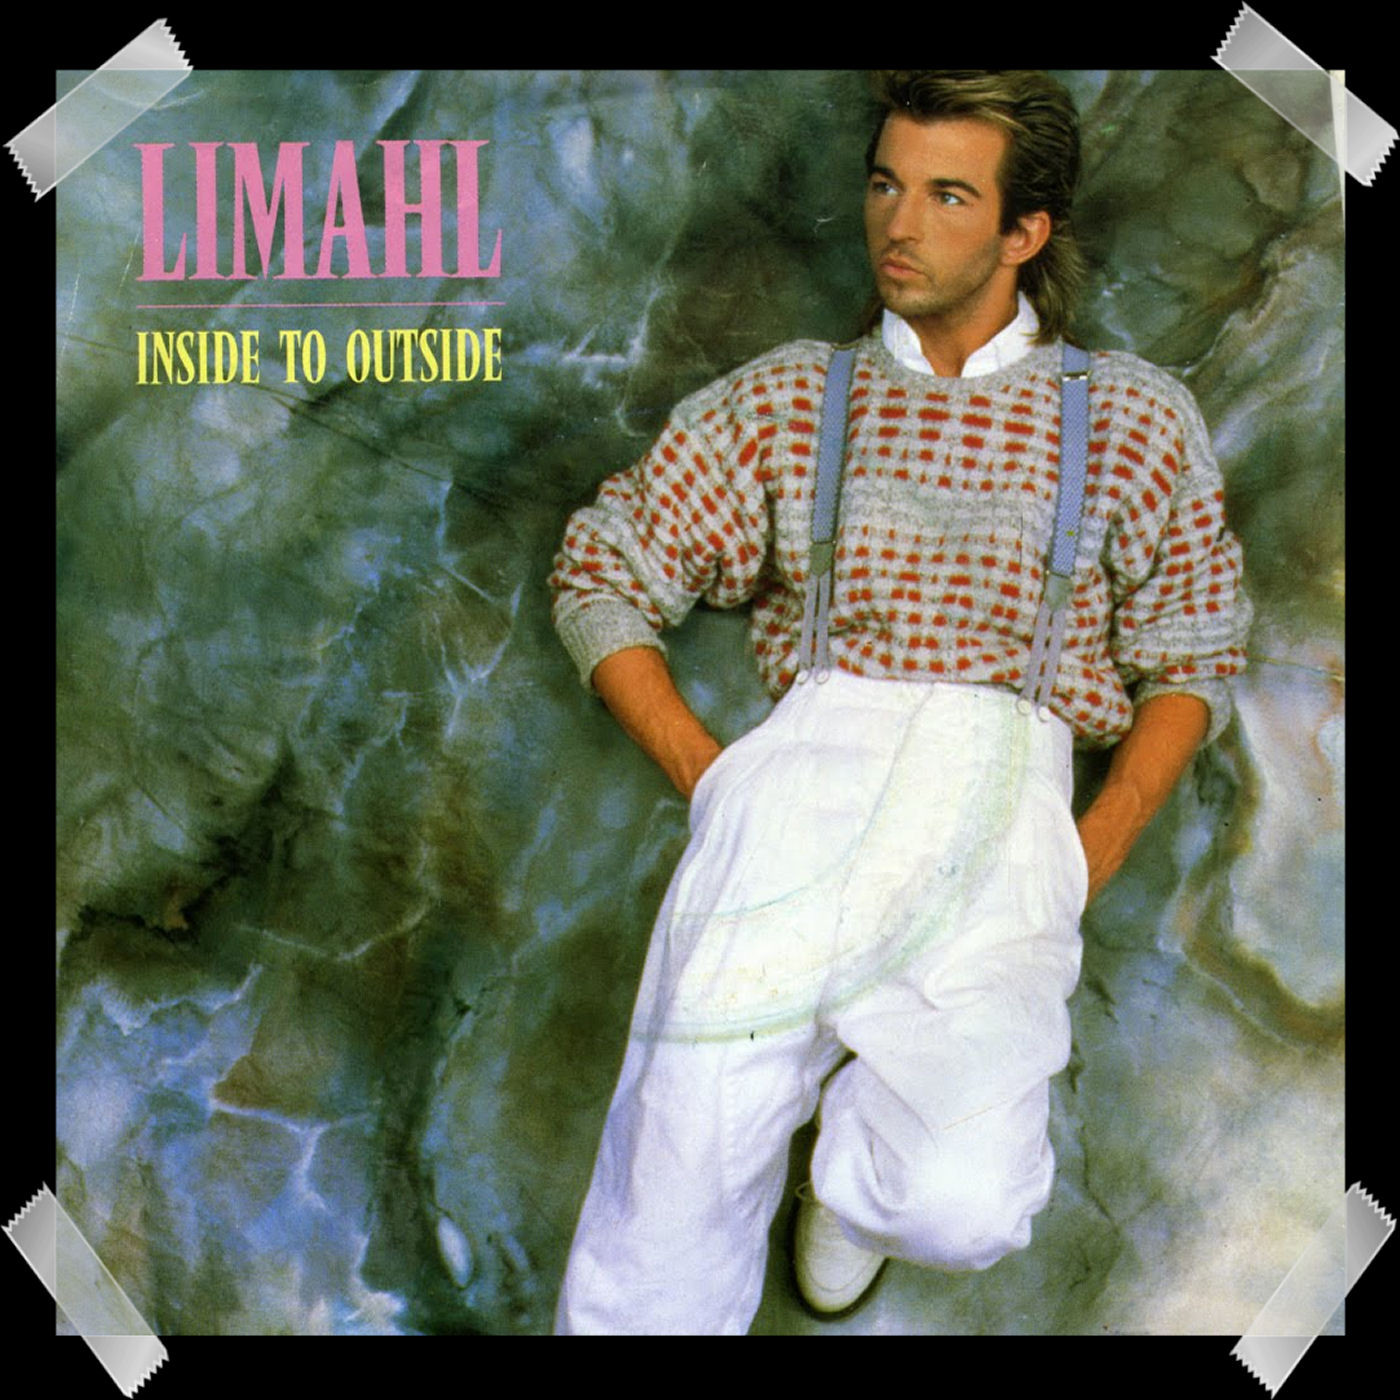 34. Limahl - Inside To Outisde